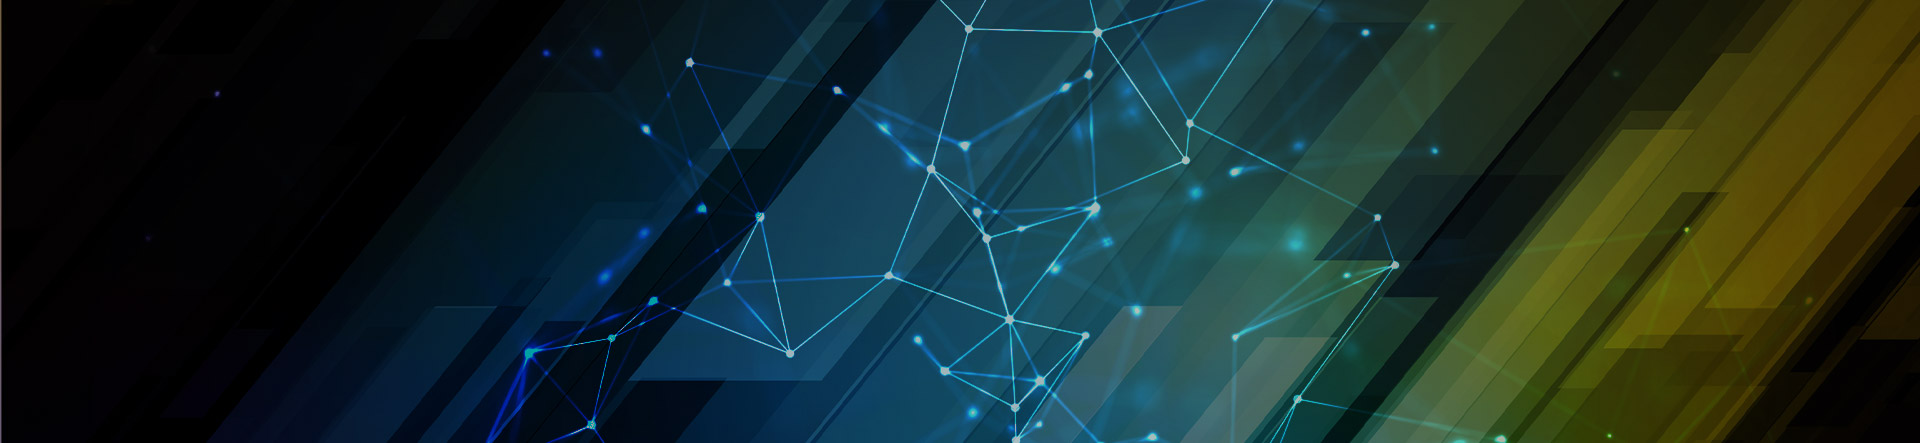 abstract digital lines connected by points banner